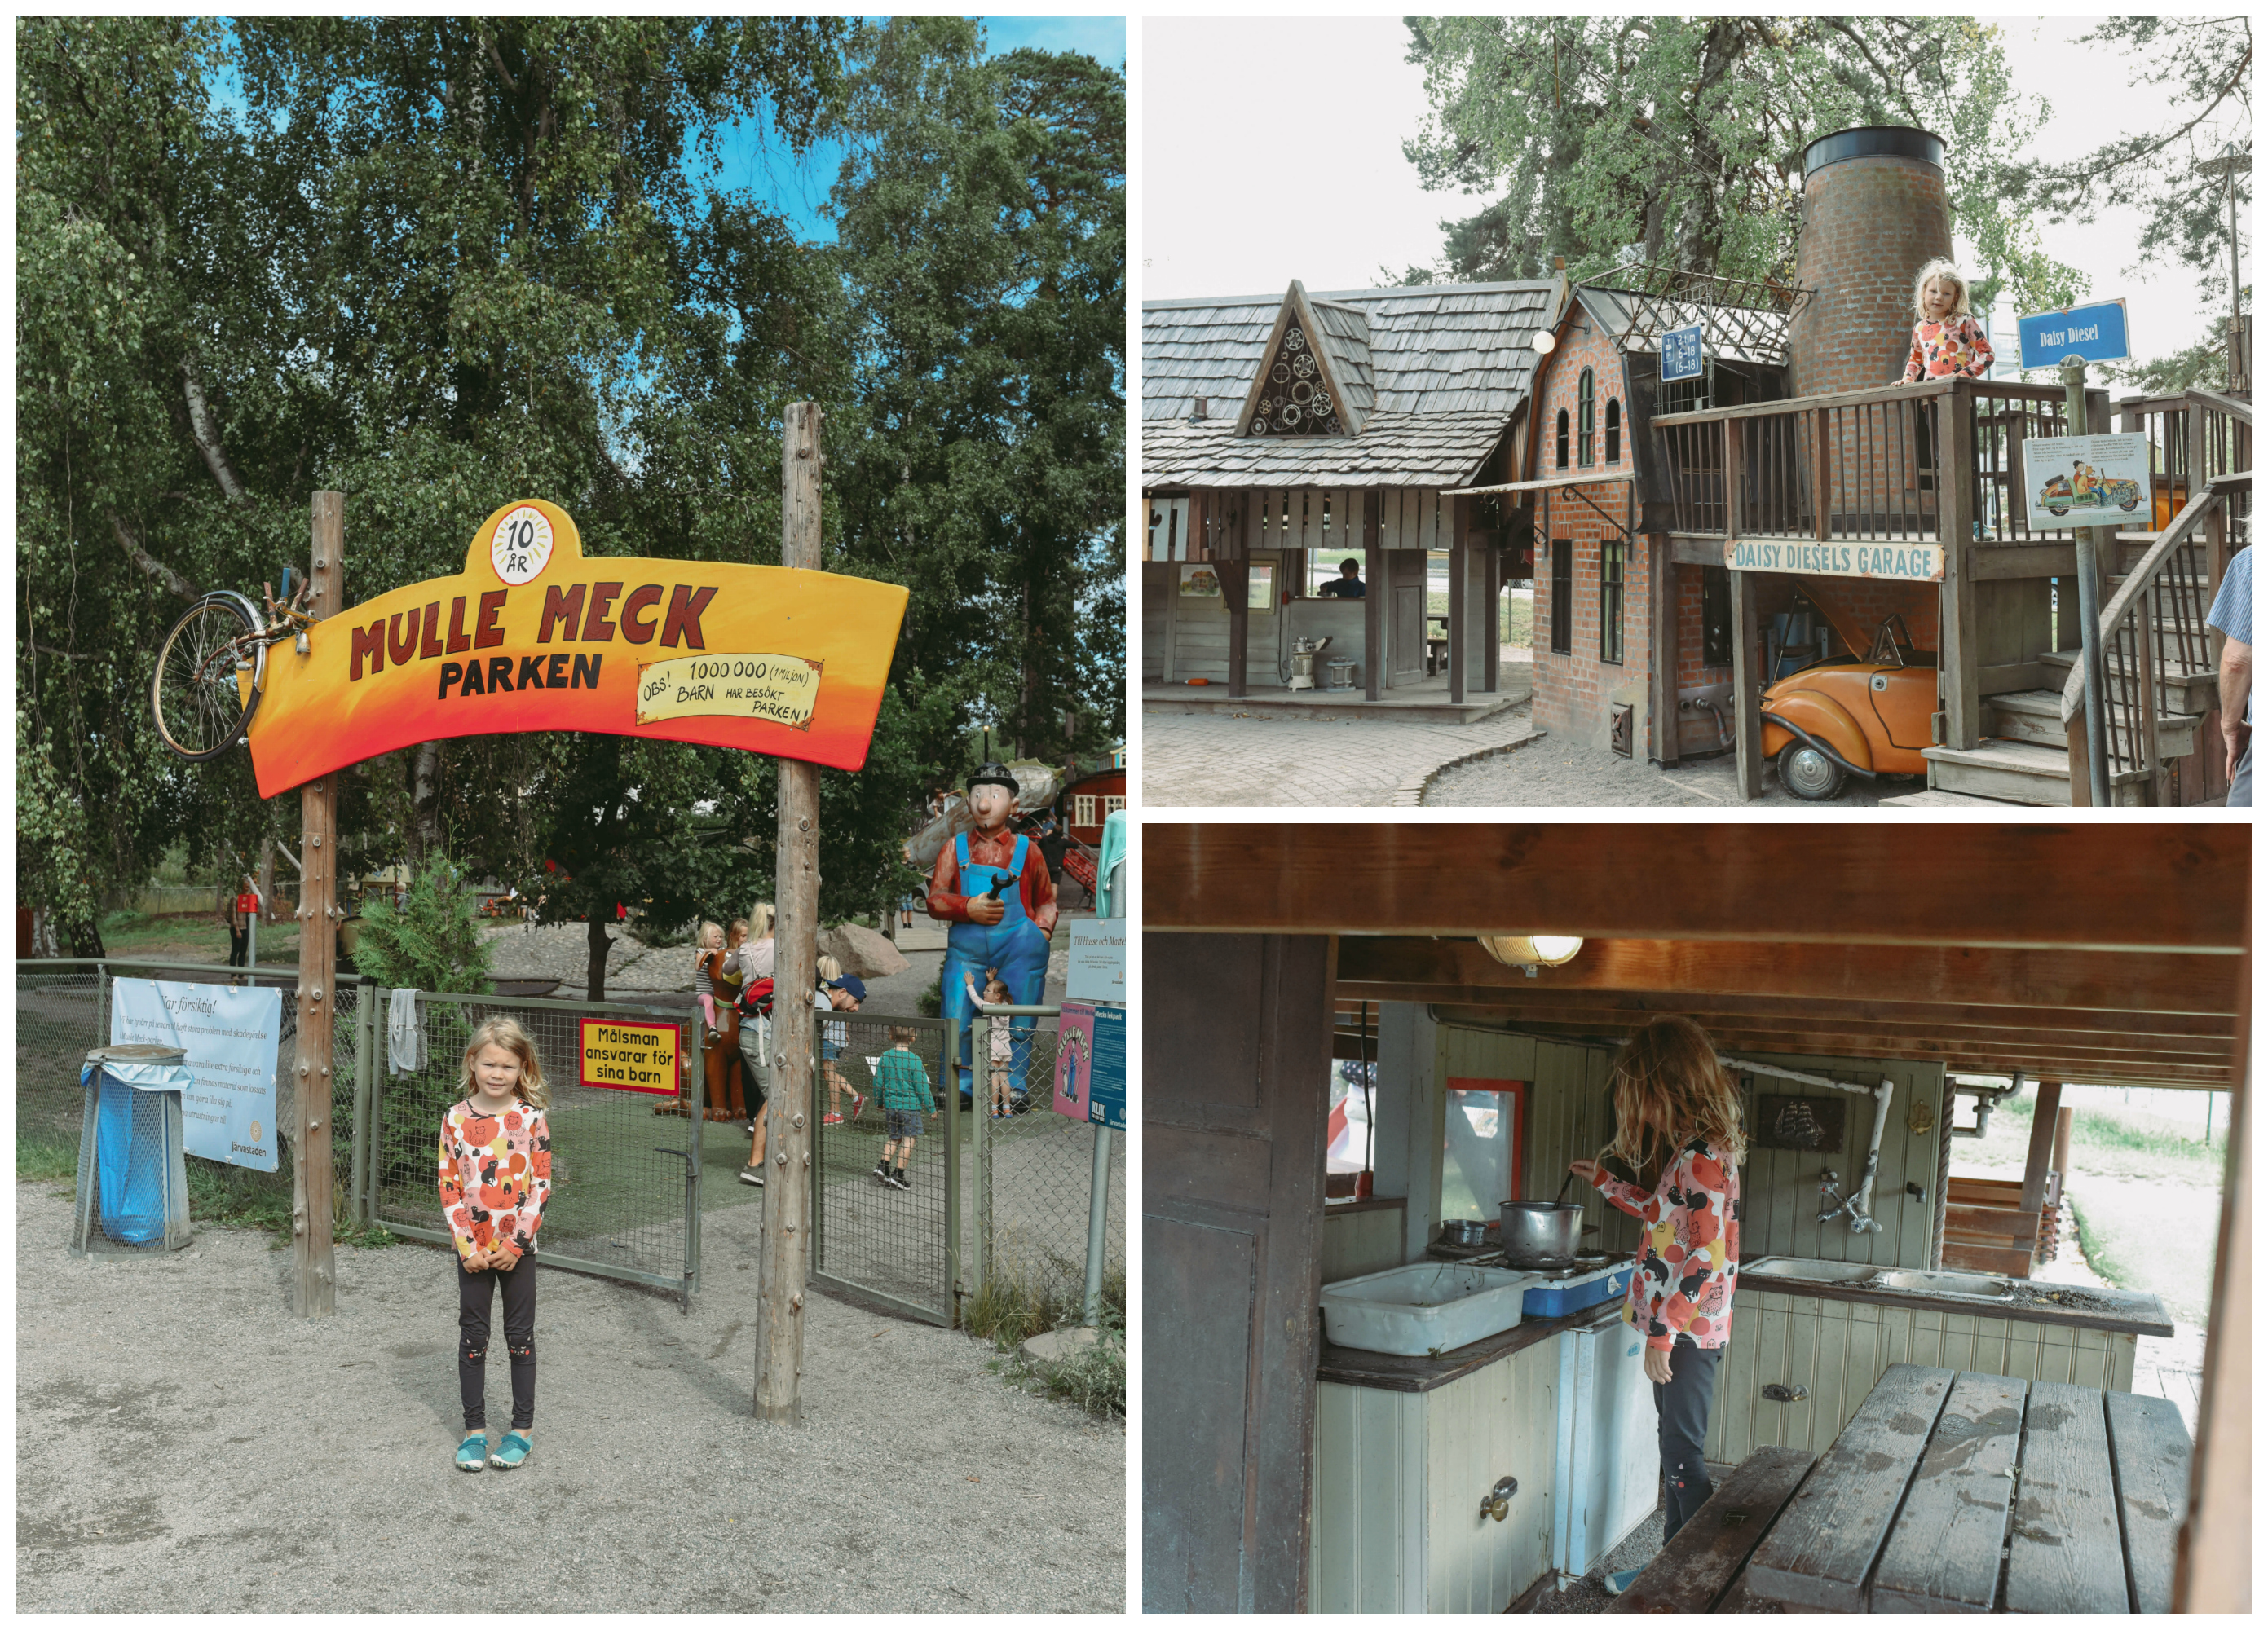 Mulle Meck Playground